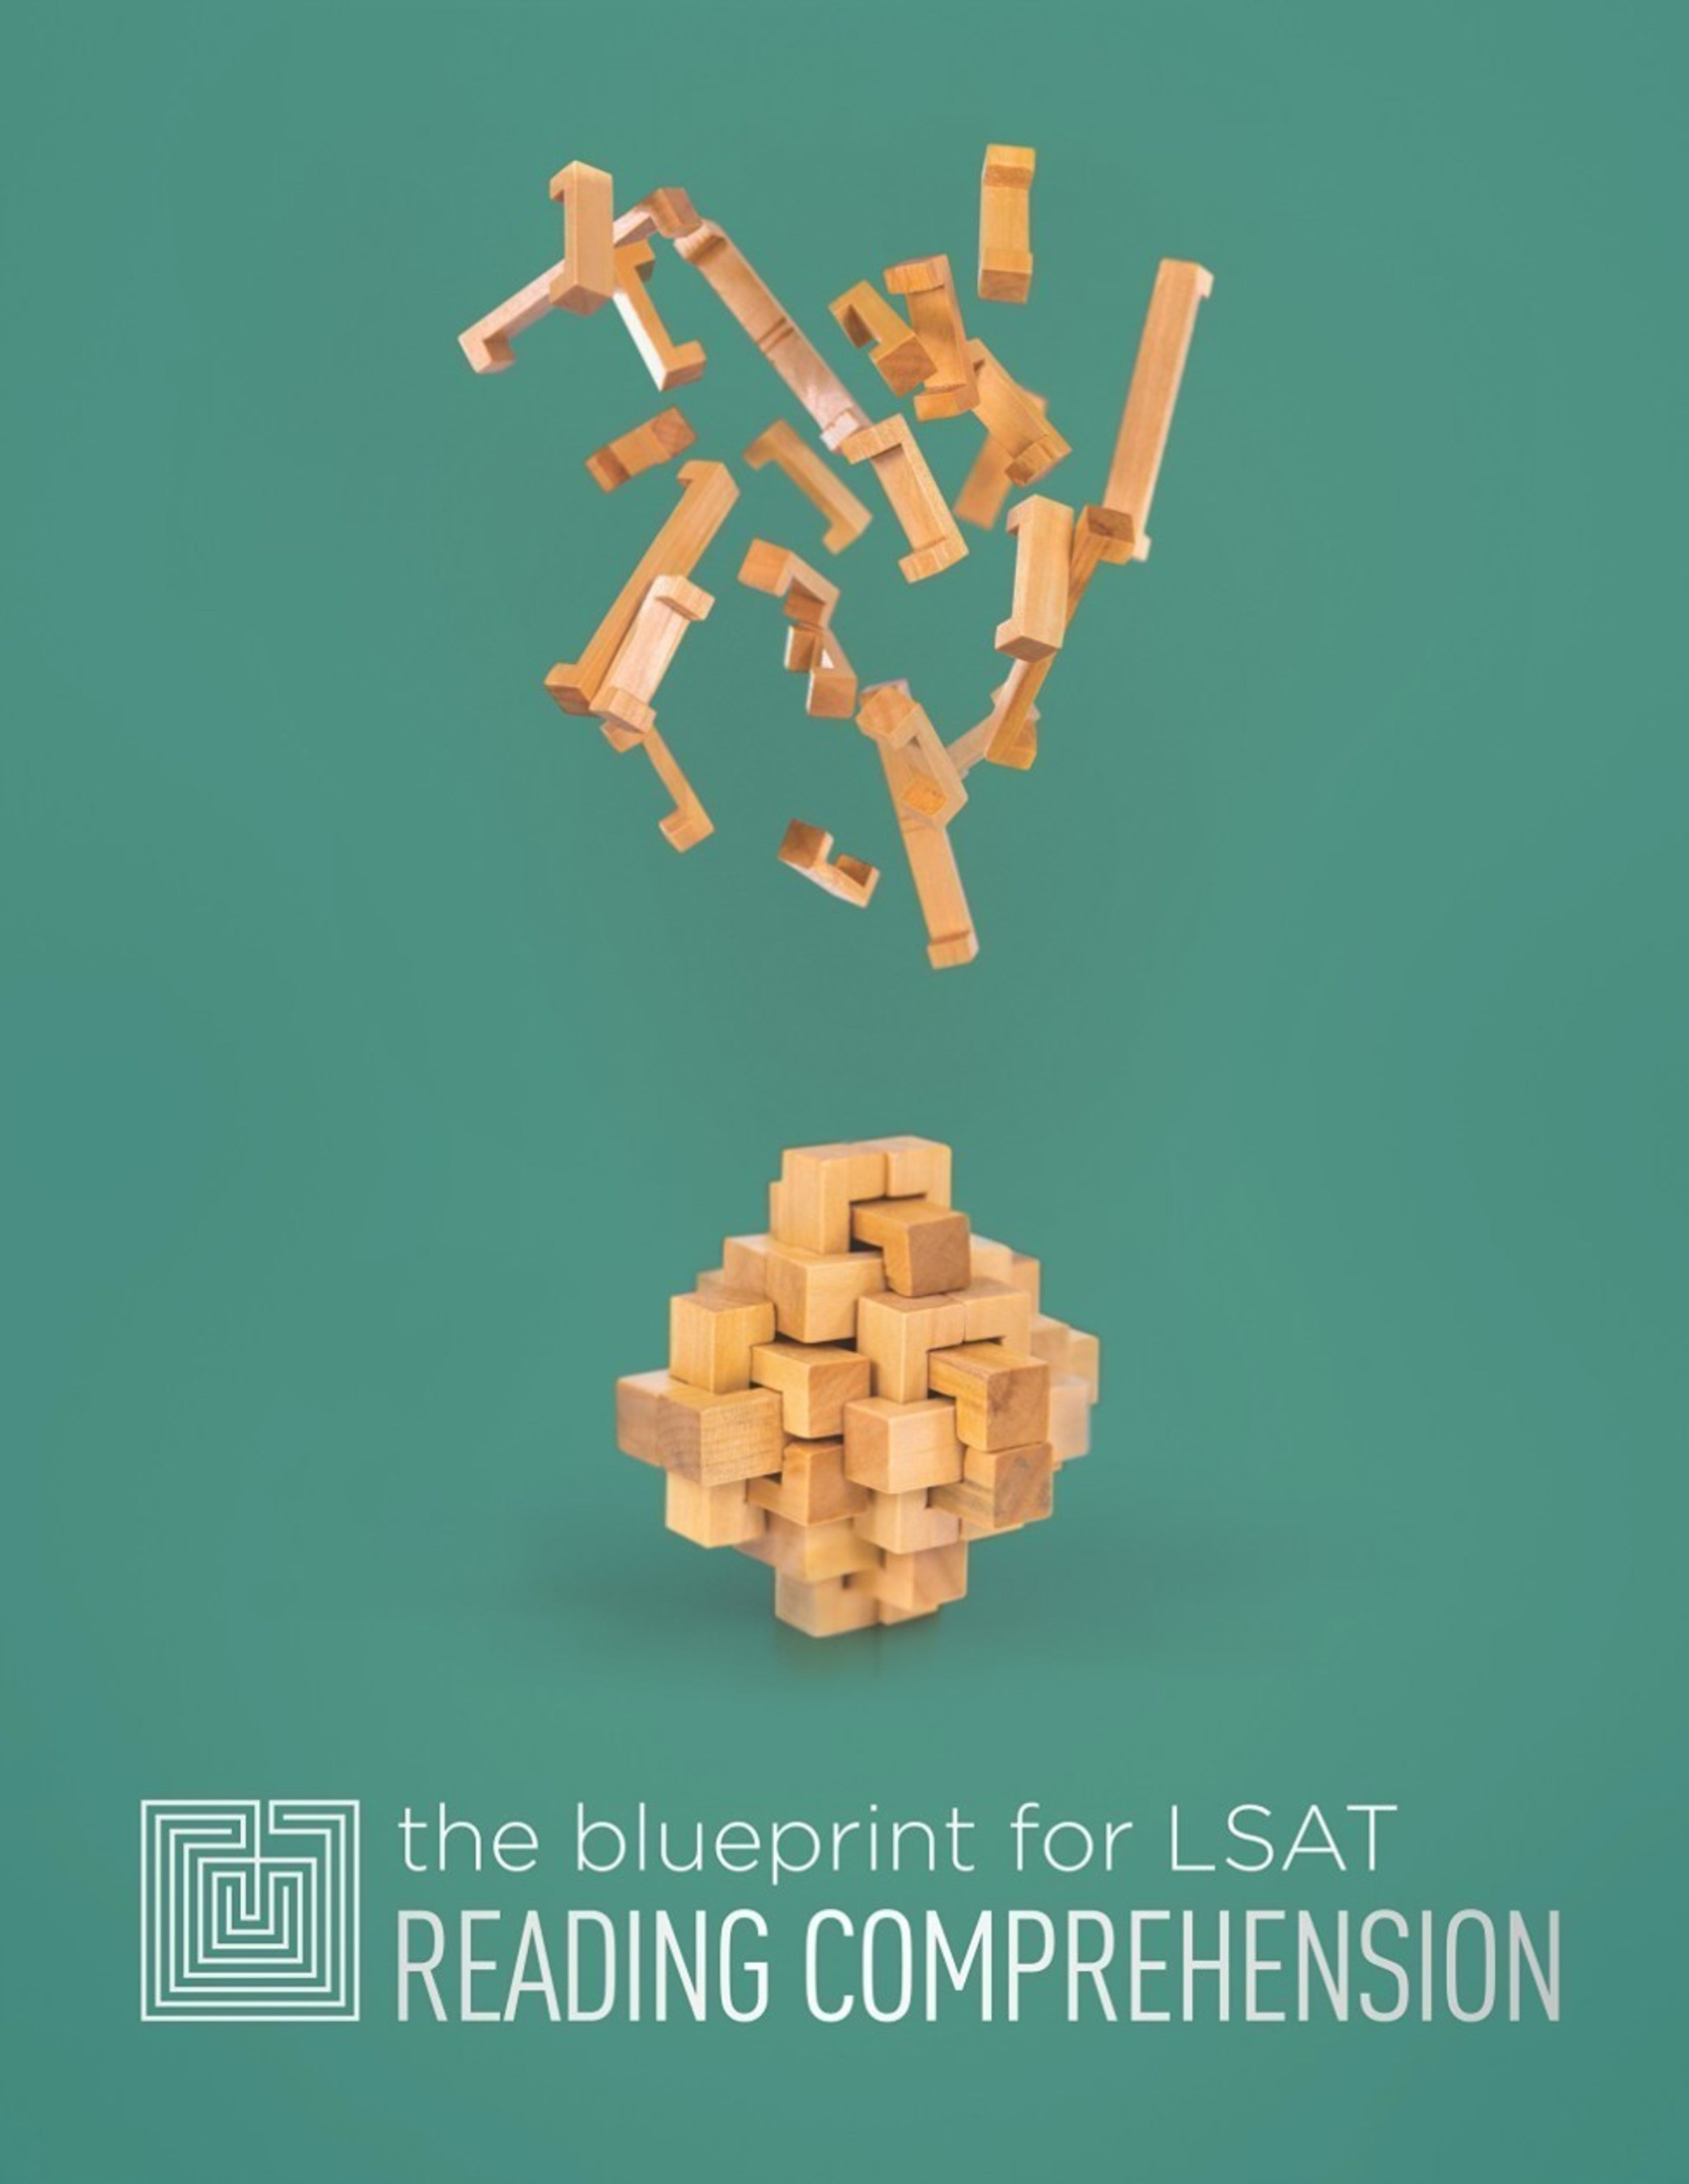 New lsat reading comprehension book released by blueprint test the blueprint for lsat reading comprehension condenses the entire reading comprehension portion of blueprints popular and effective lsat course into a malvernweather Image collections